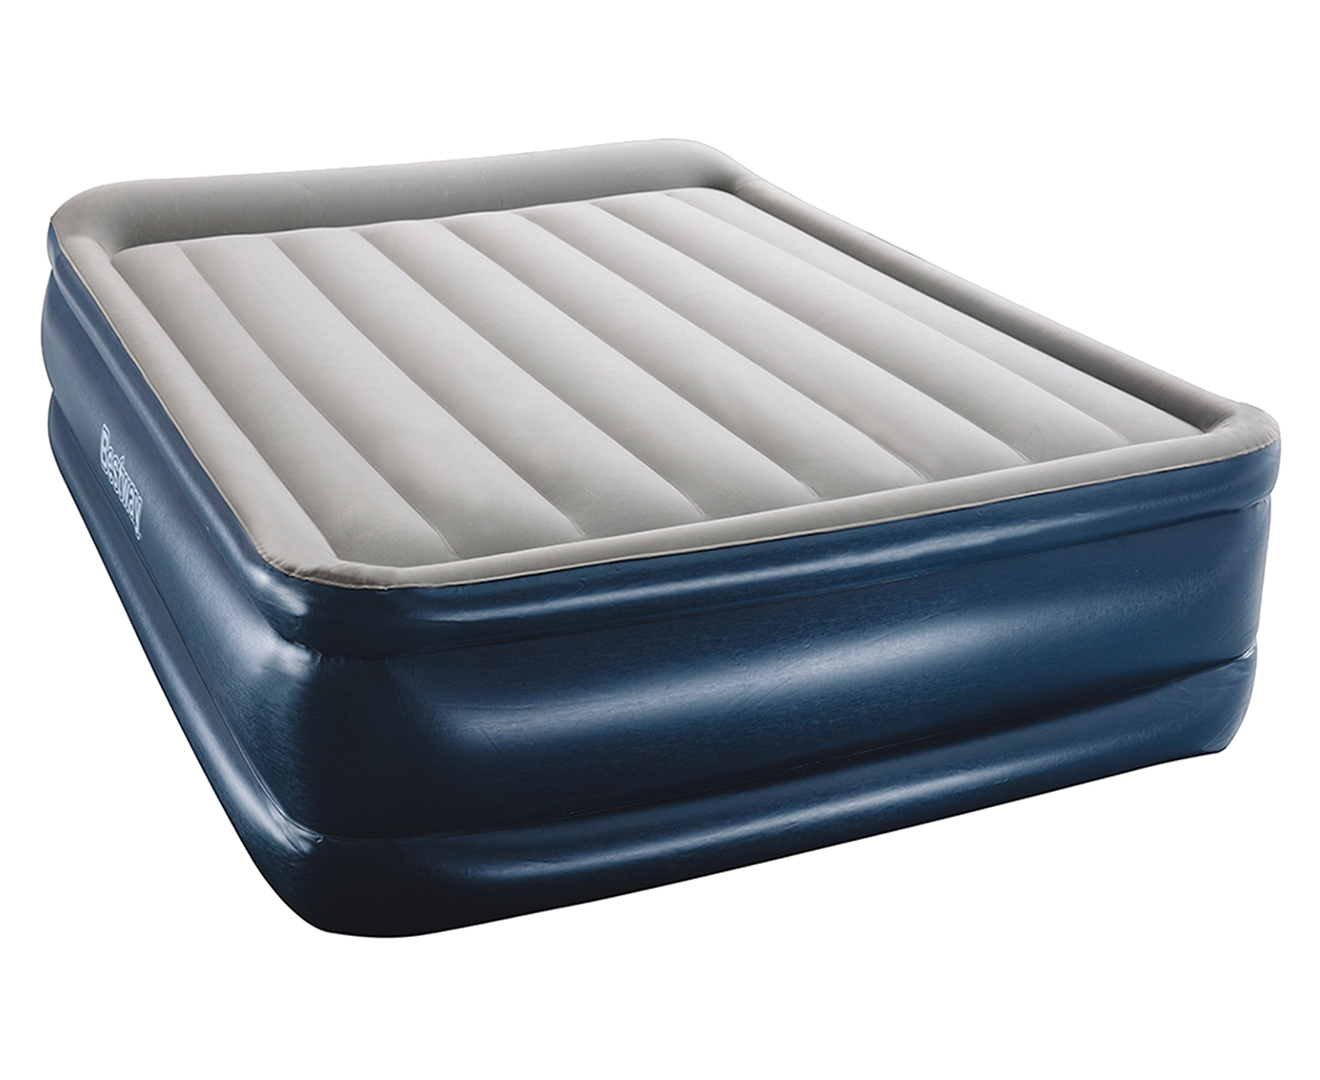 Bestway Queen Air Bed Premium Inflatable Mattress Electric Built-in Pump Camping